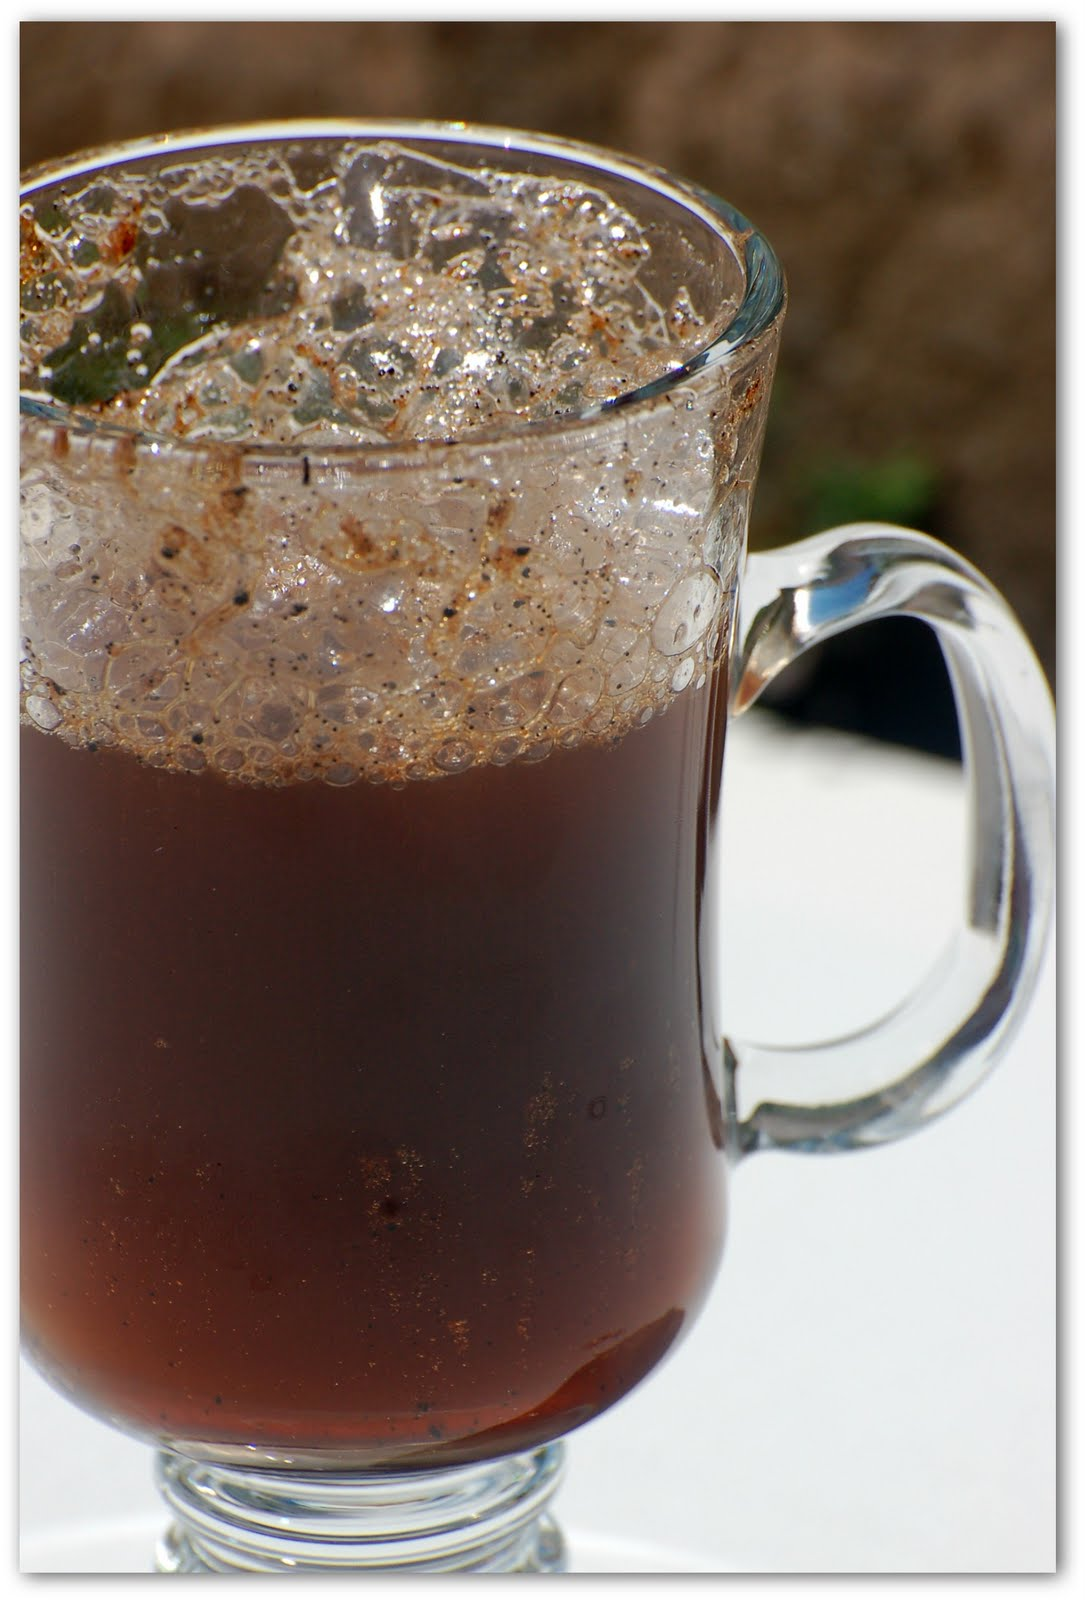 Pickled: Give your liver some love – with homemade root beer!